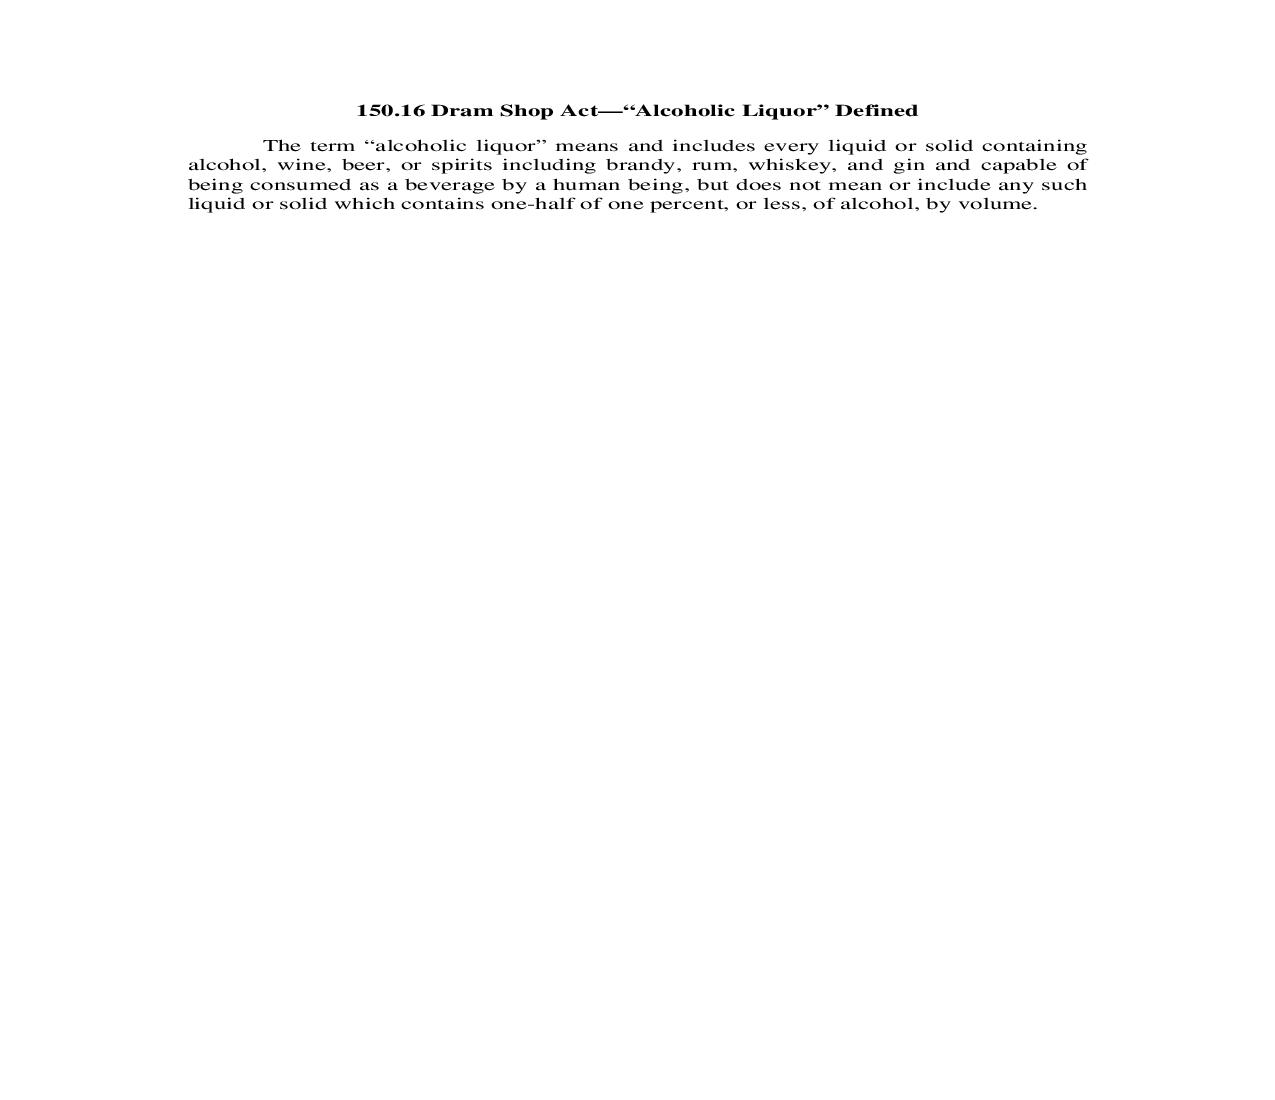 150.16. Dram Shop Act-Alcoholic Liquor Defined | Pdf Doc Docx | Illinois_JI